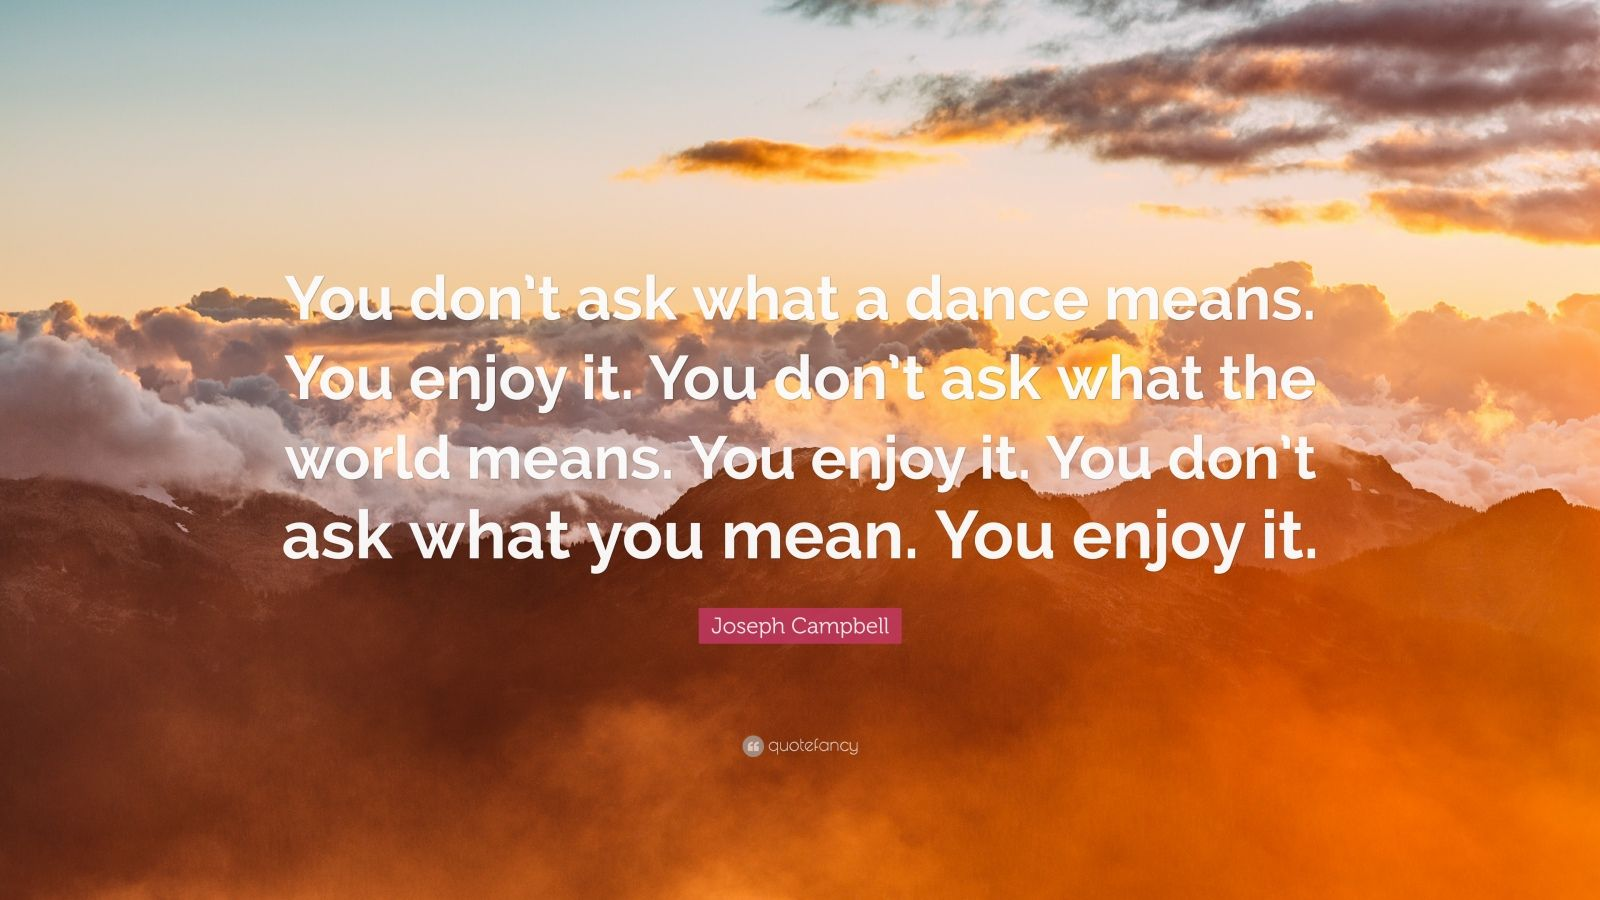 """Joseph Campbell Quote: """"You don't ask what a dance means. You enjoy it. You don't ask what the world means. You enjoy it. You don't ask what you mean. You enjoy it."""""""